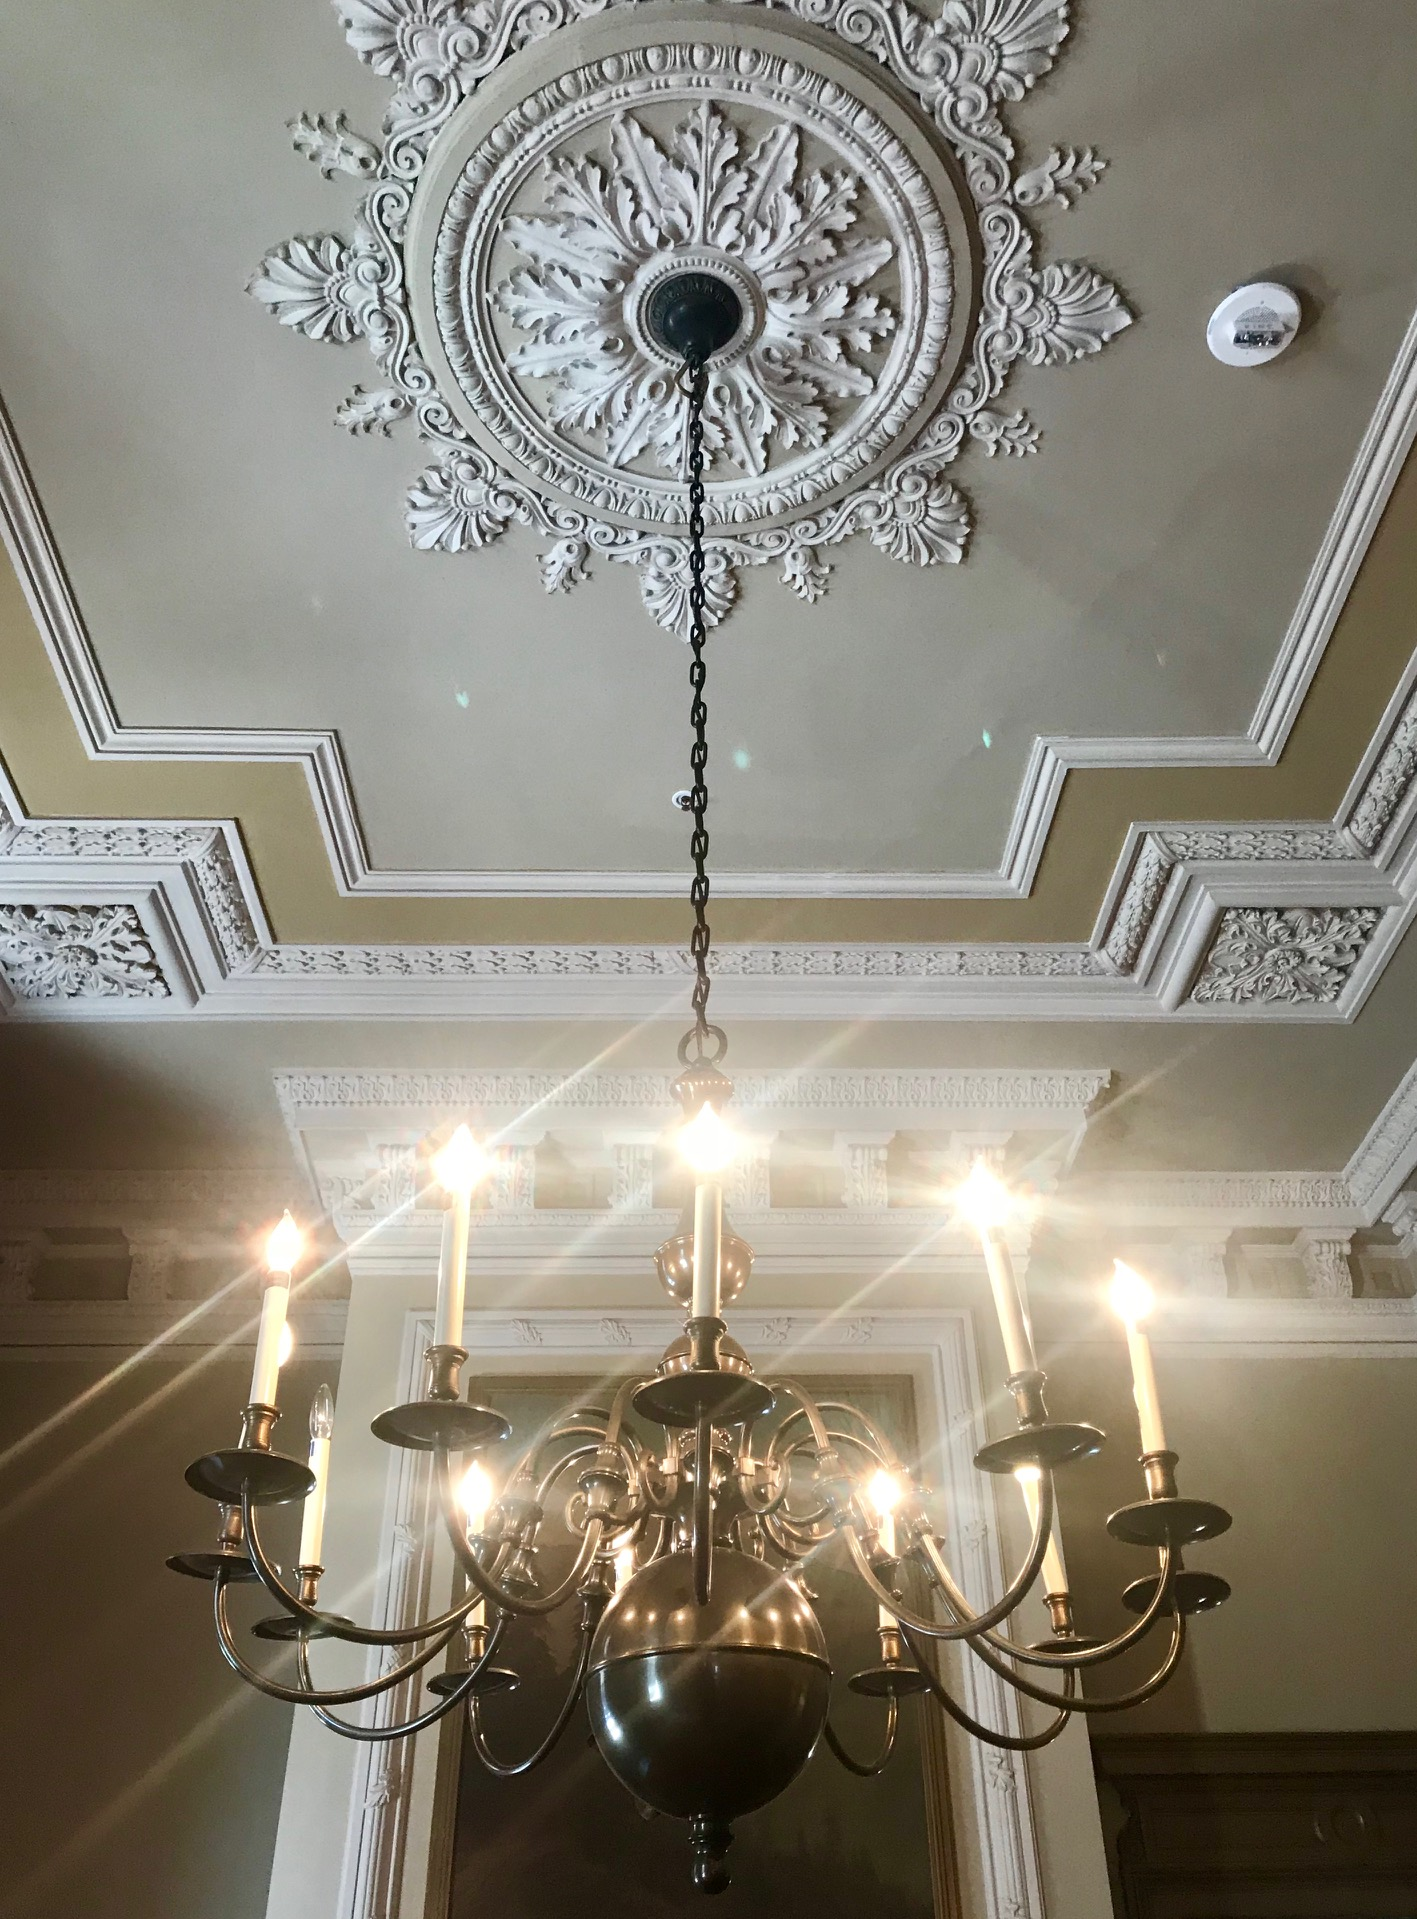 Neoclassical Revival-style touches